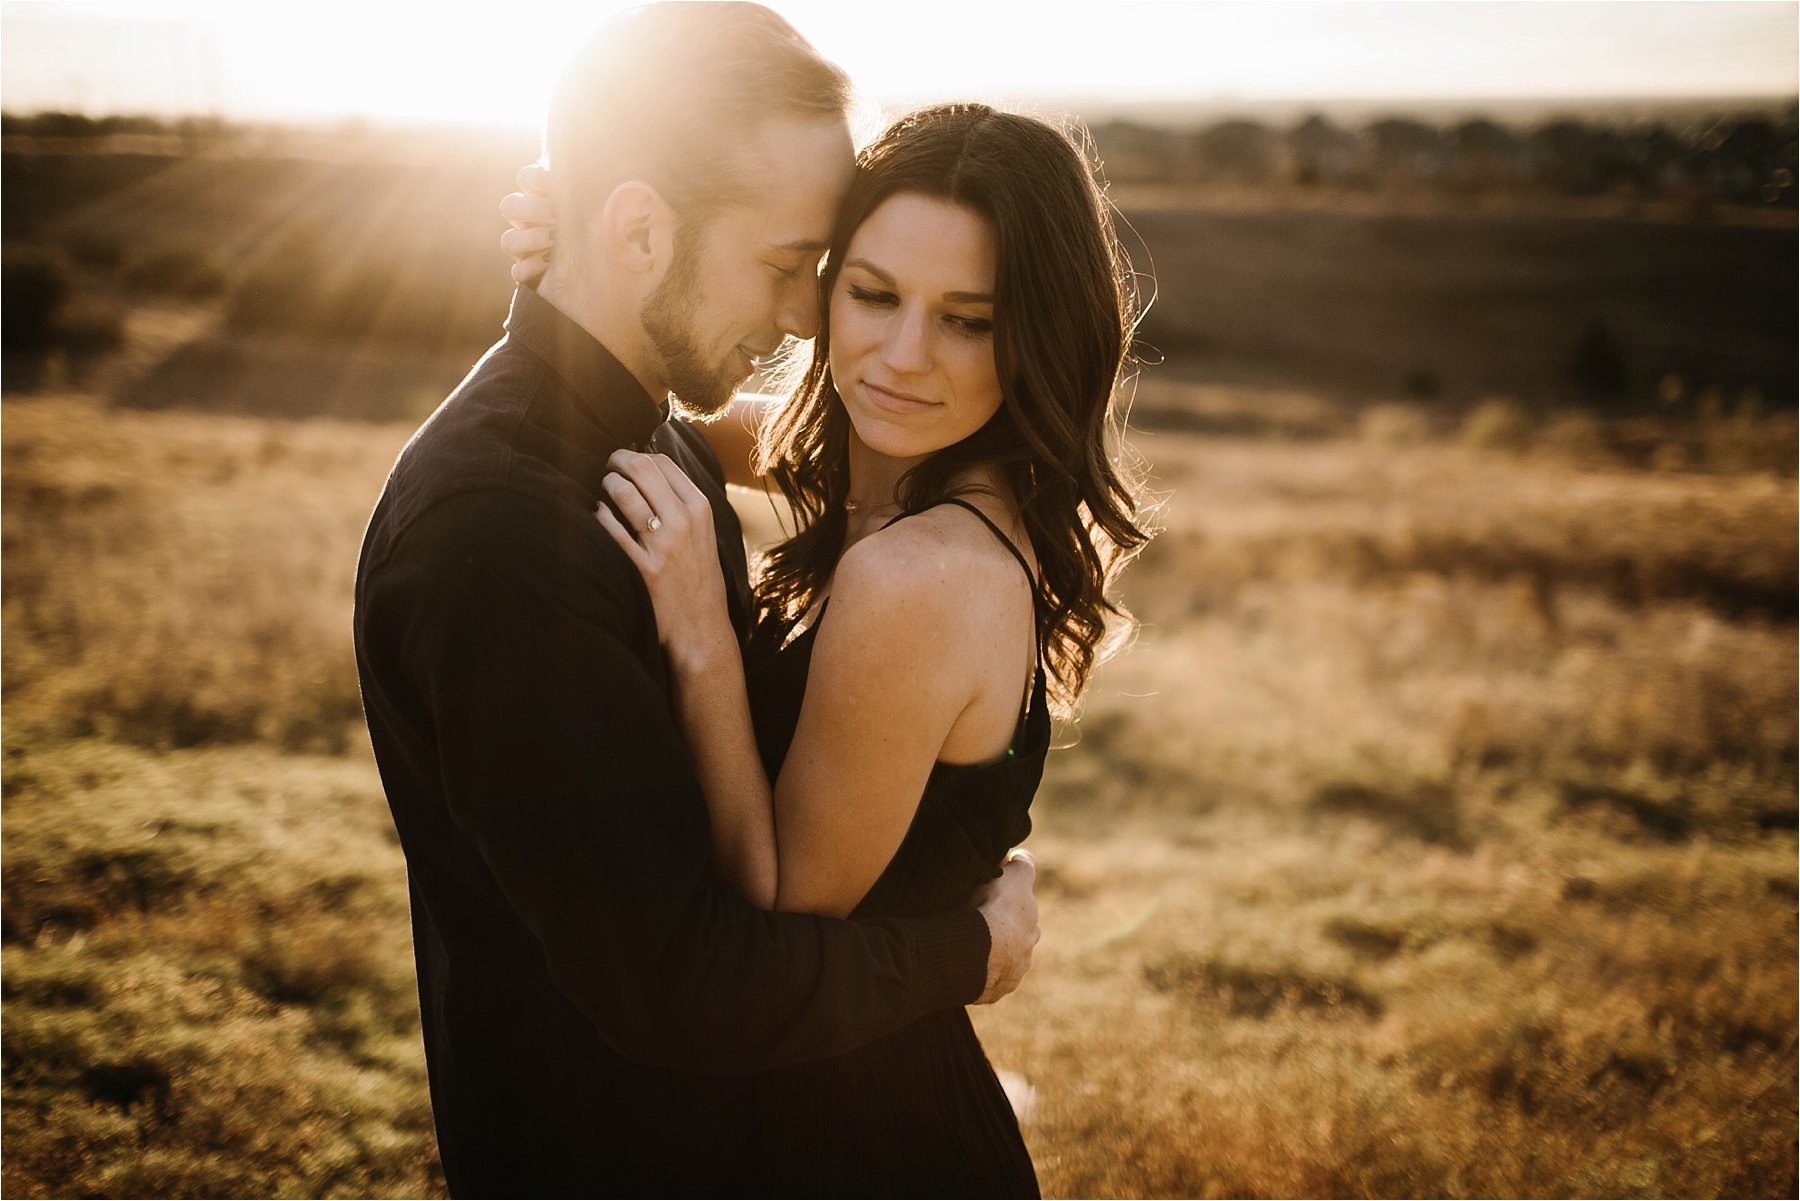 Trey + Phoebe __ a playful, intimate engagement session with dark_neutral outfit inspiration by North Texas Wedding Photographer Rachel Meagan Photography __ 31